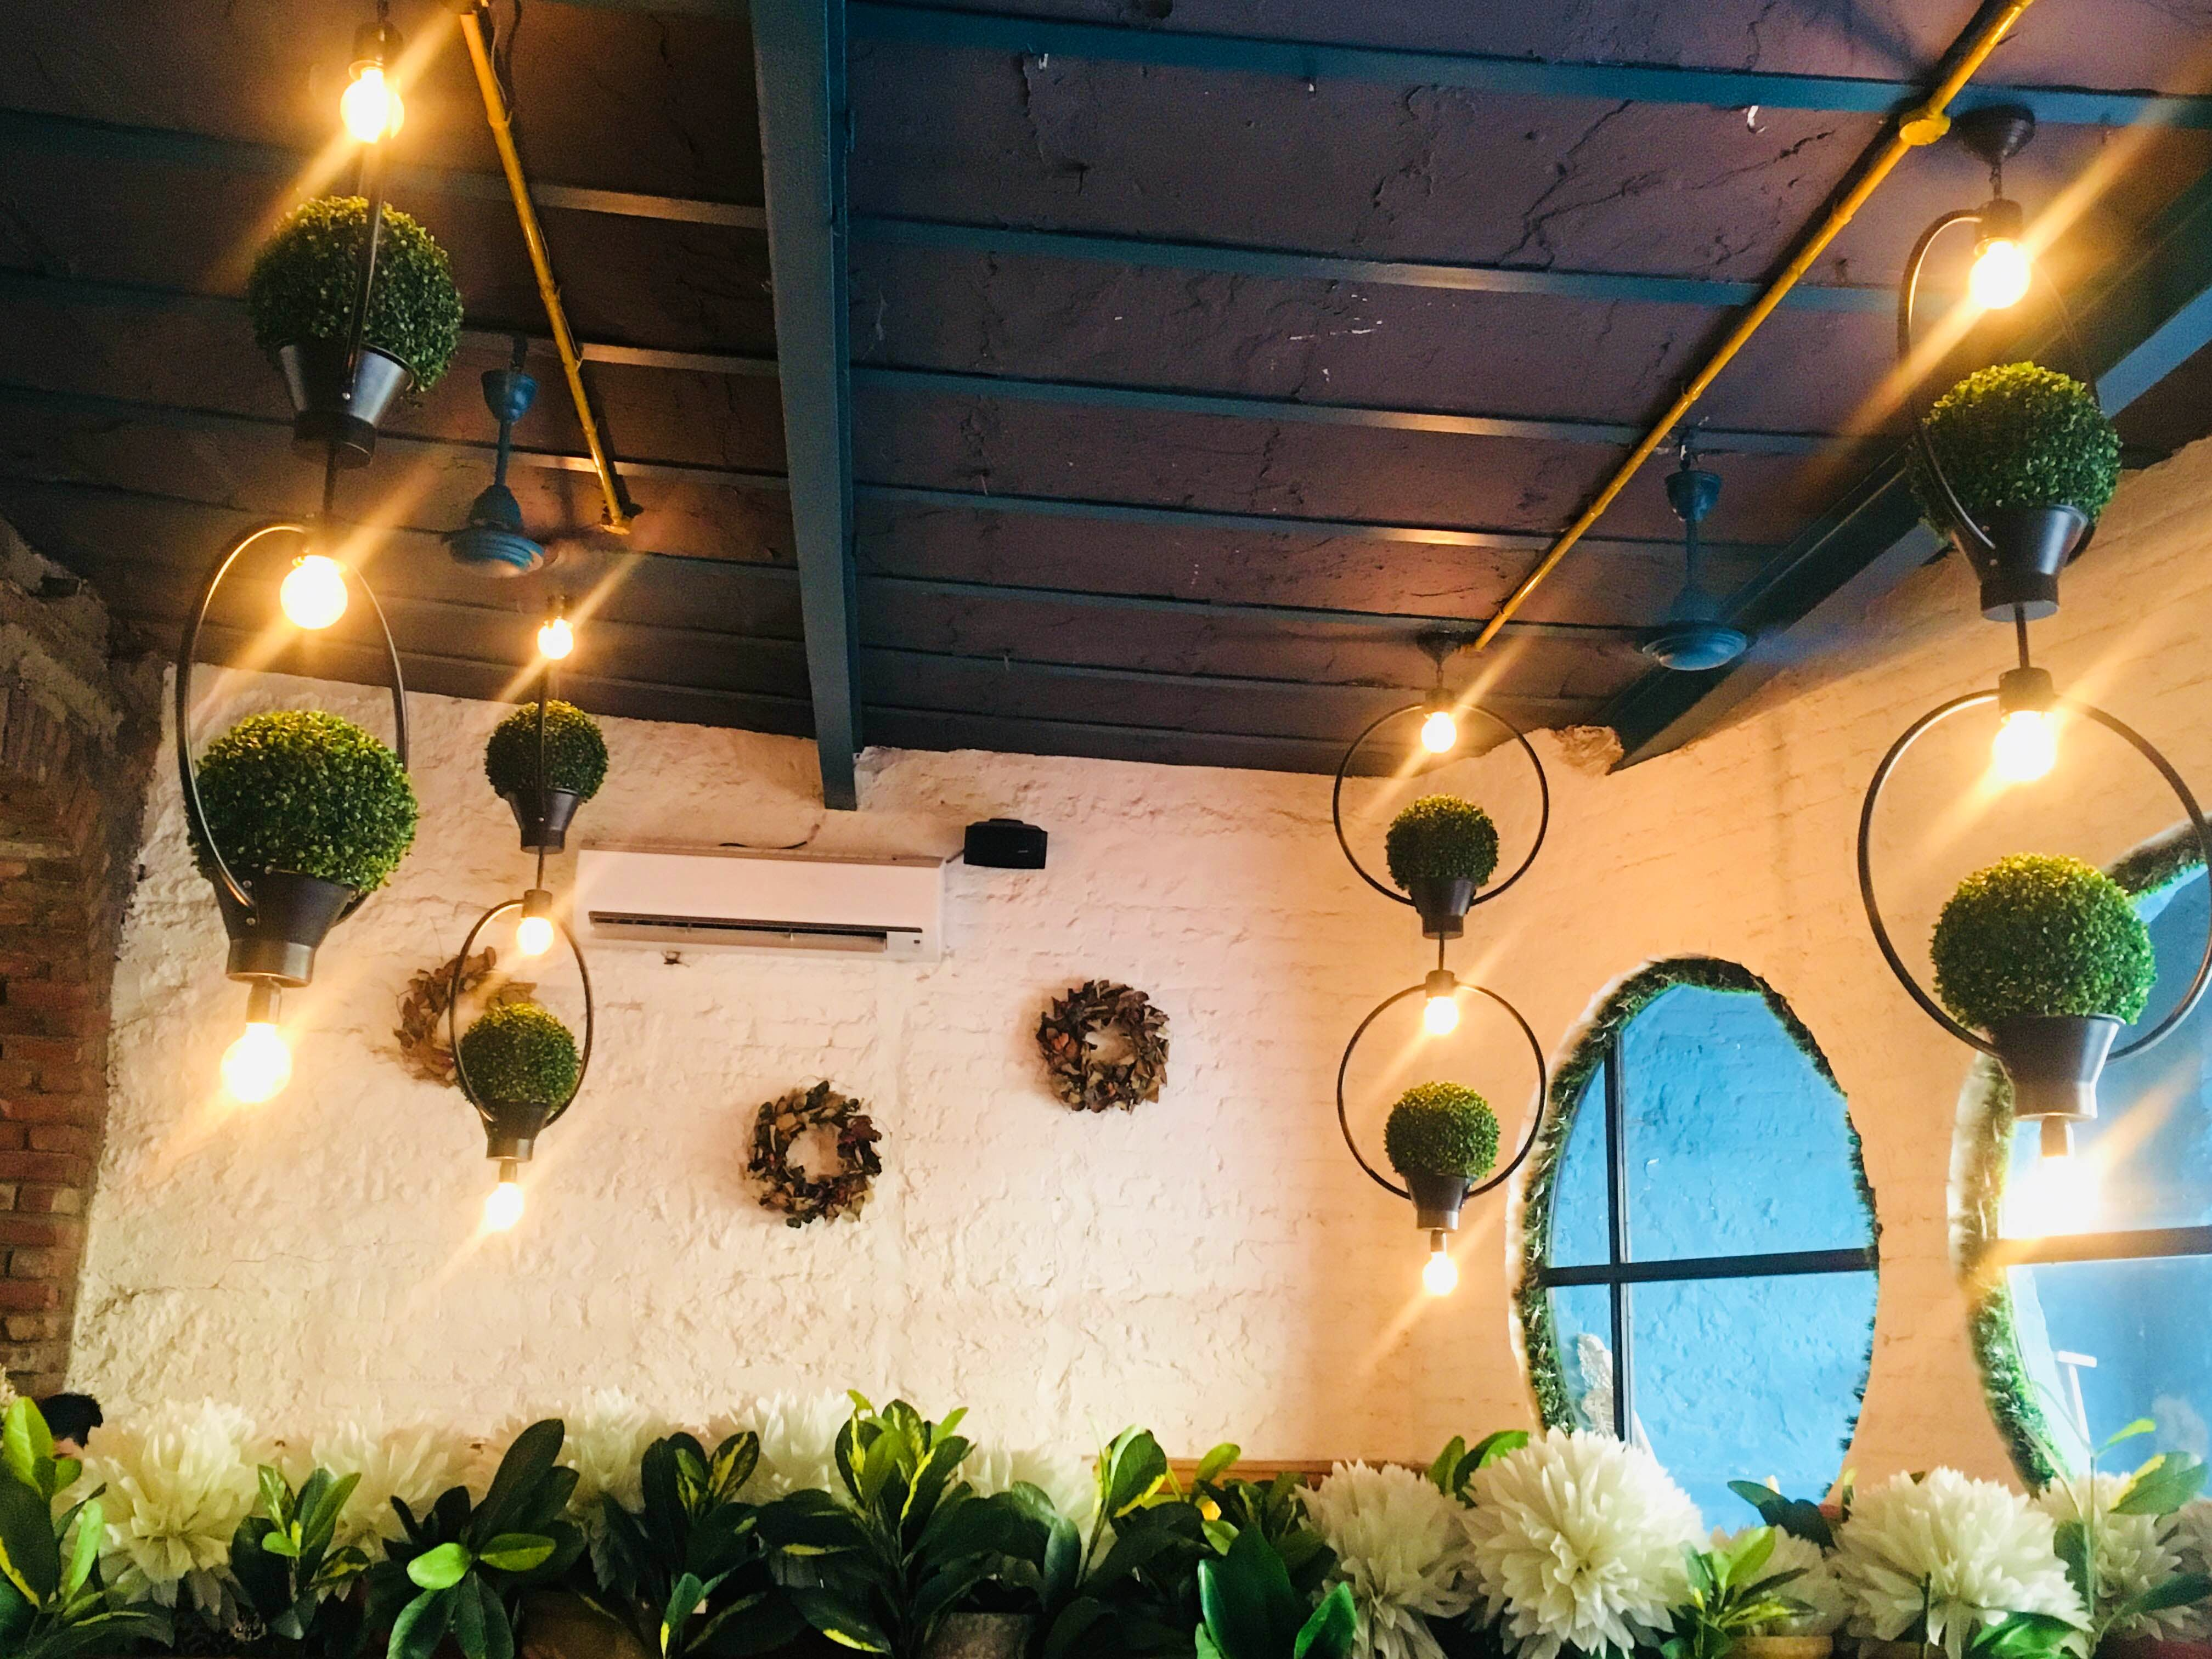 Pretty Decor, Appetising Food, Soothing Vibes & More At This Oh-So-Lovely Cafe Will Leave You Mesmerised